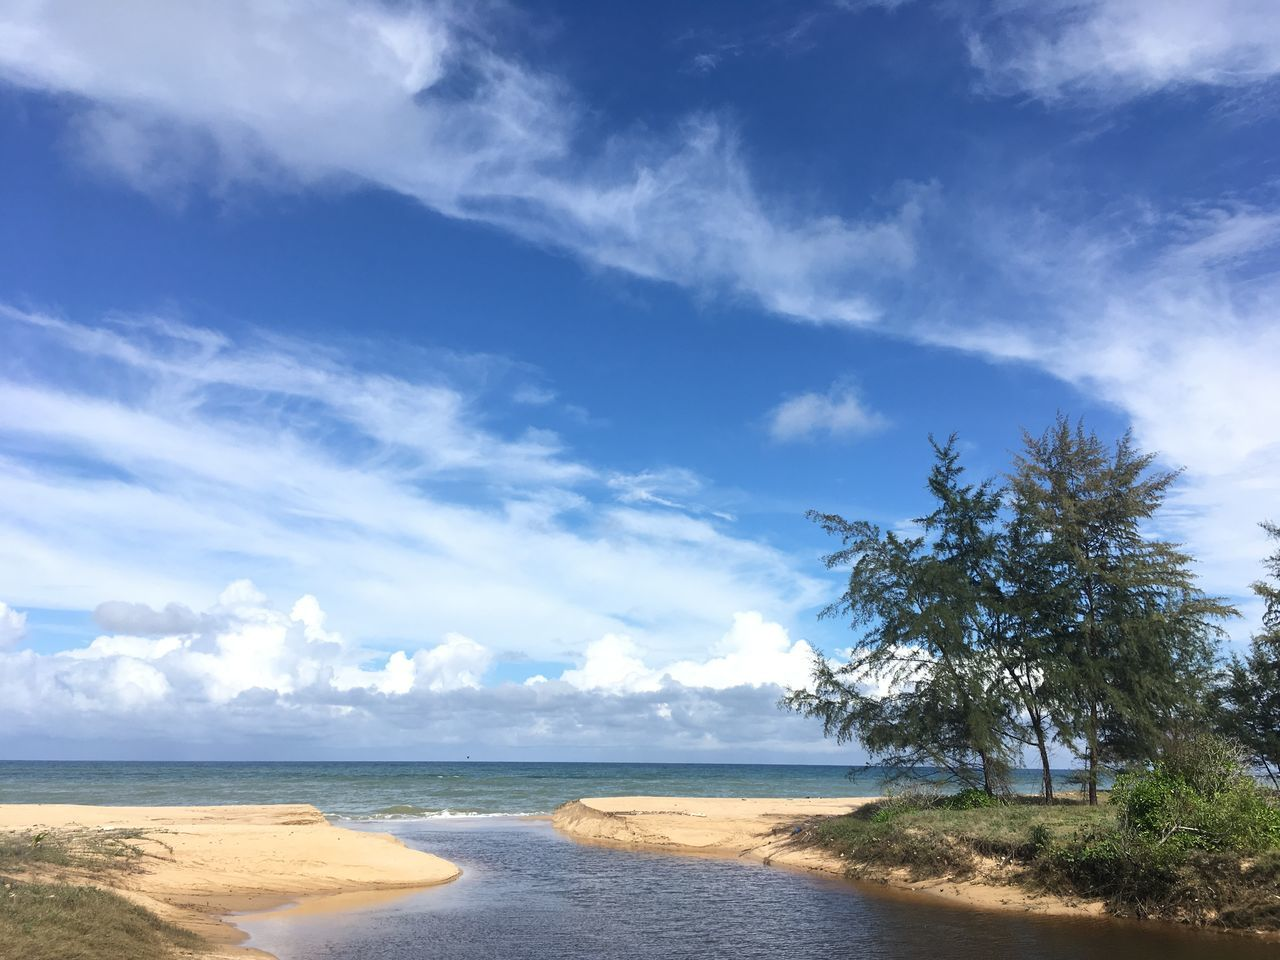 sea, beach, sand, sky, scenics, tranquil scene, water, nature, beauty in nature, tranquility, horizon over water, day, cloud - sky, no people, outdoors, blue, tree